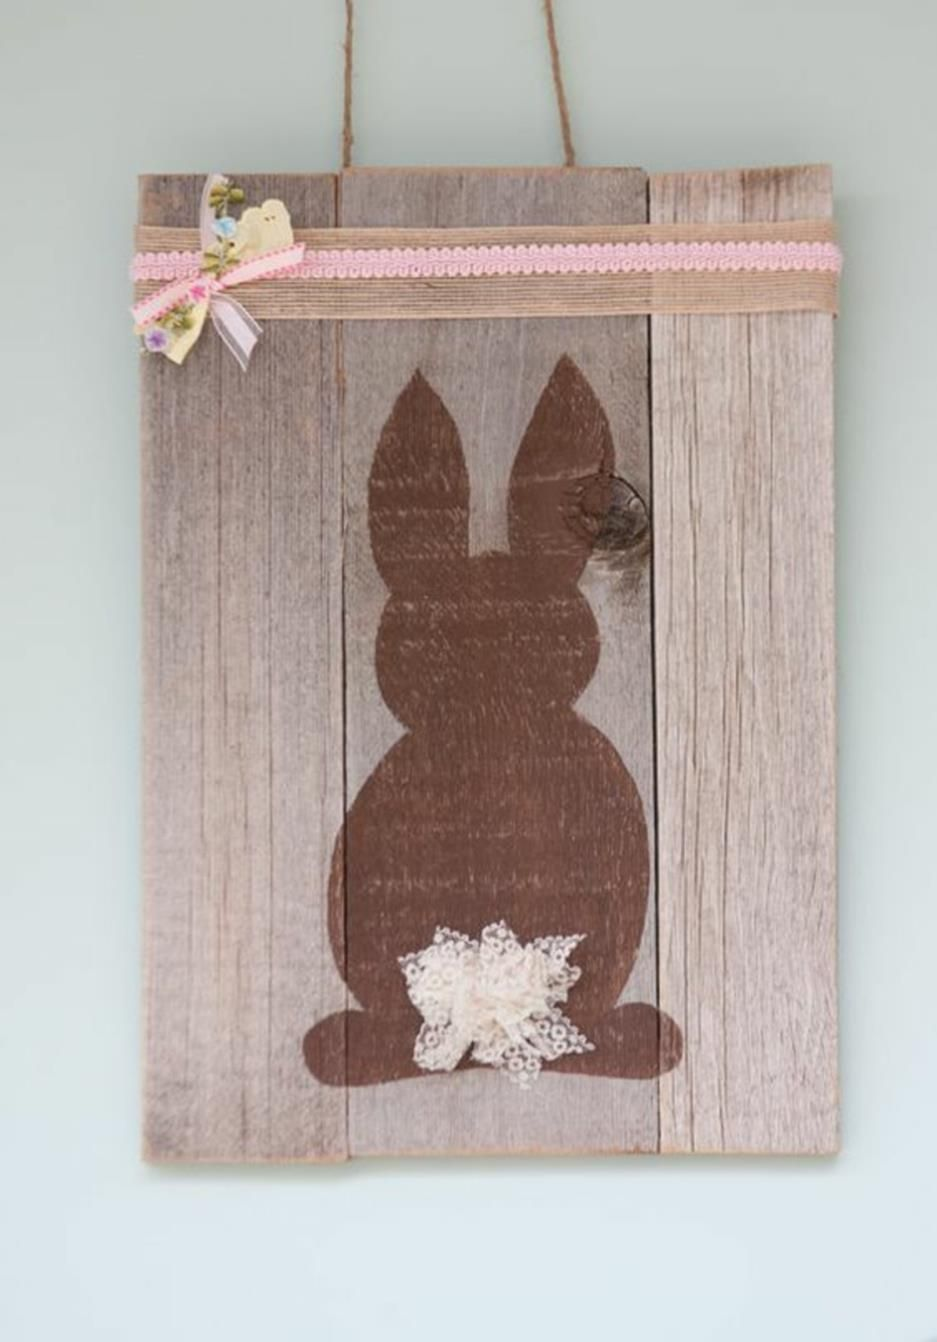 37 Diy Wooden Easter Decorations For The Outside In 2020 Easter Wood Signs Wooden Easter Decorations Easter Bunny Decorations